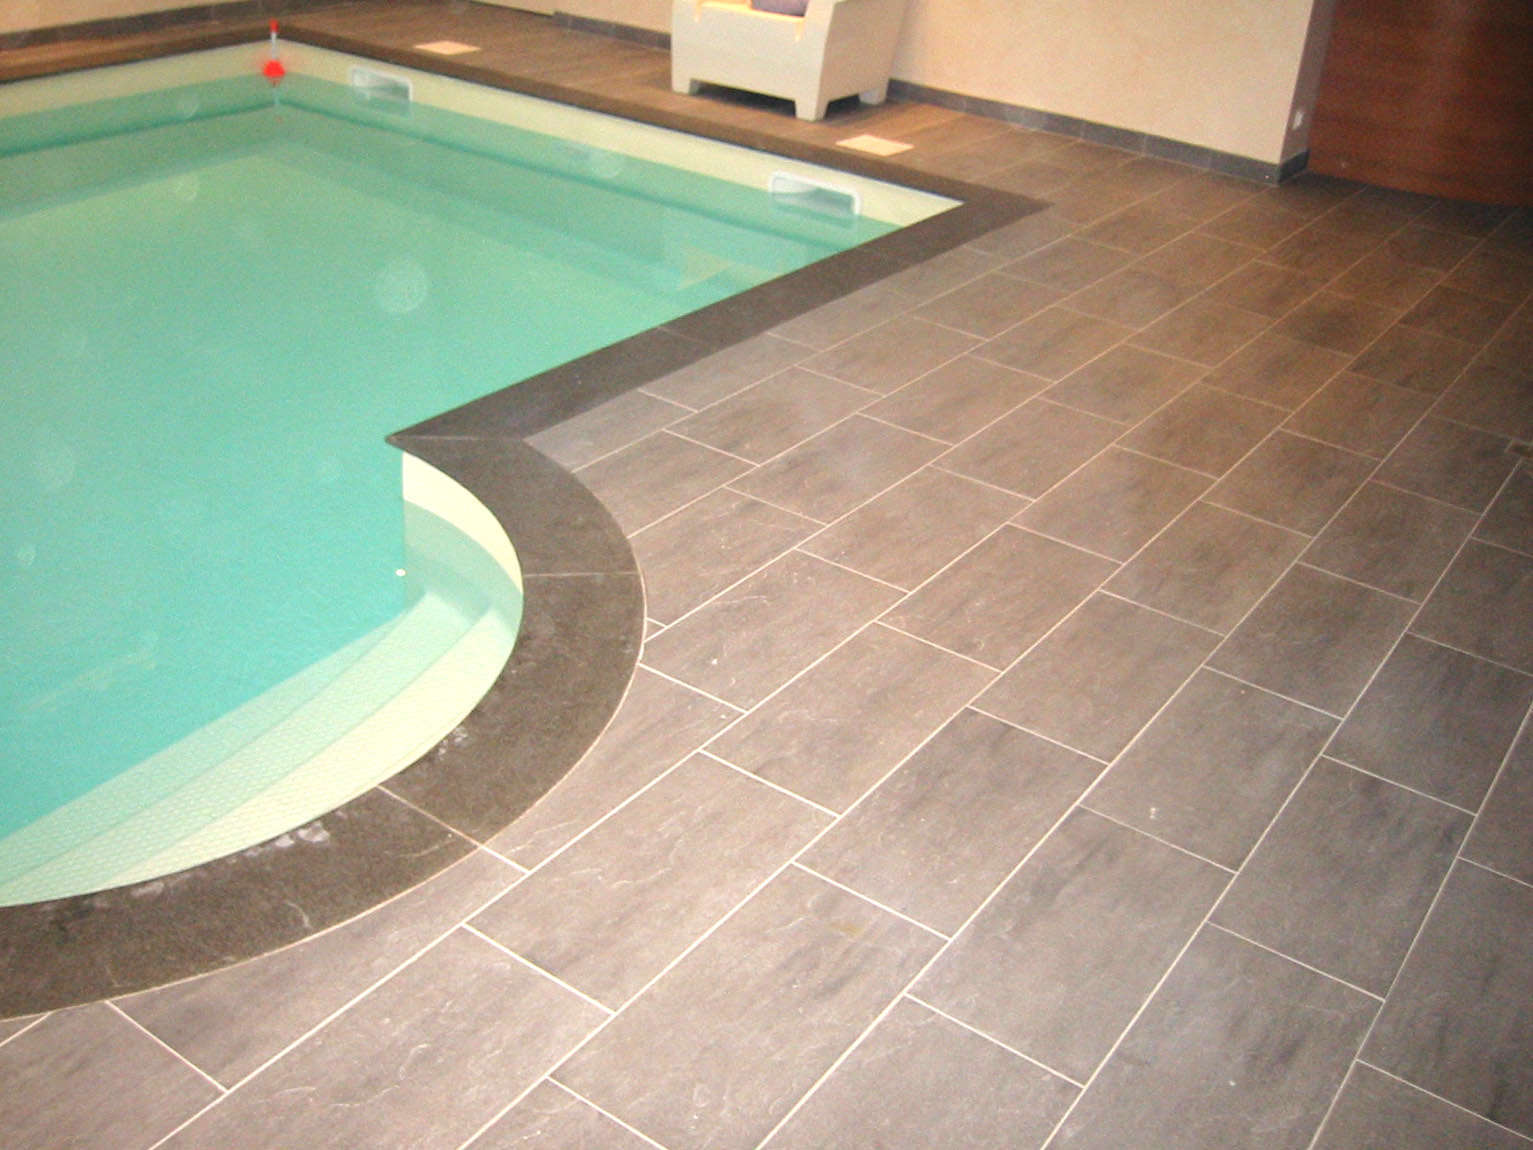 Colle carrelage piscine carrelage petit opus travertin for Colles carrelage